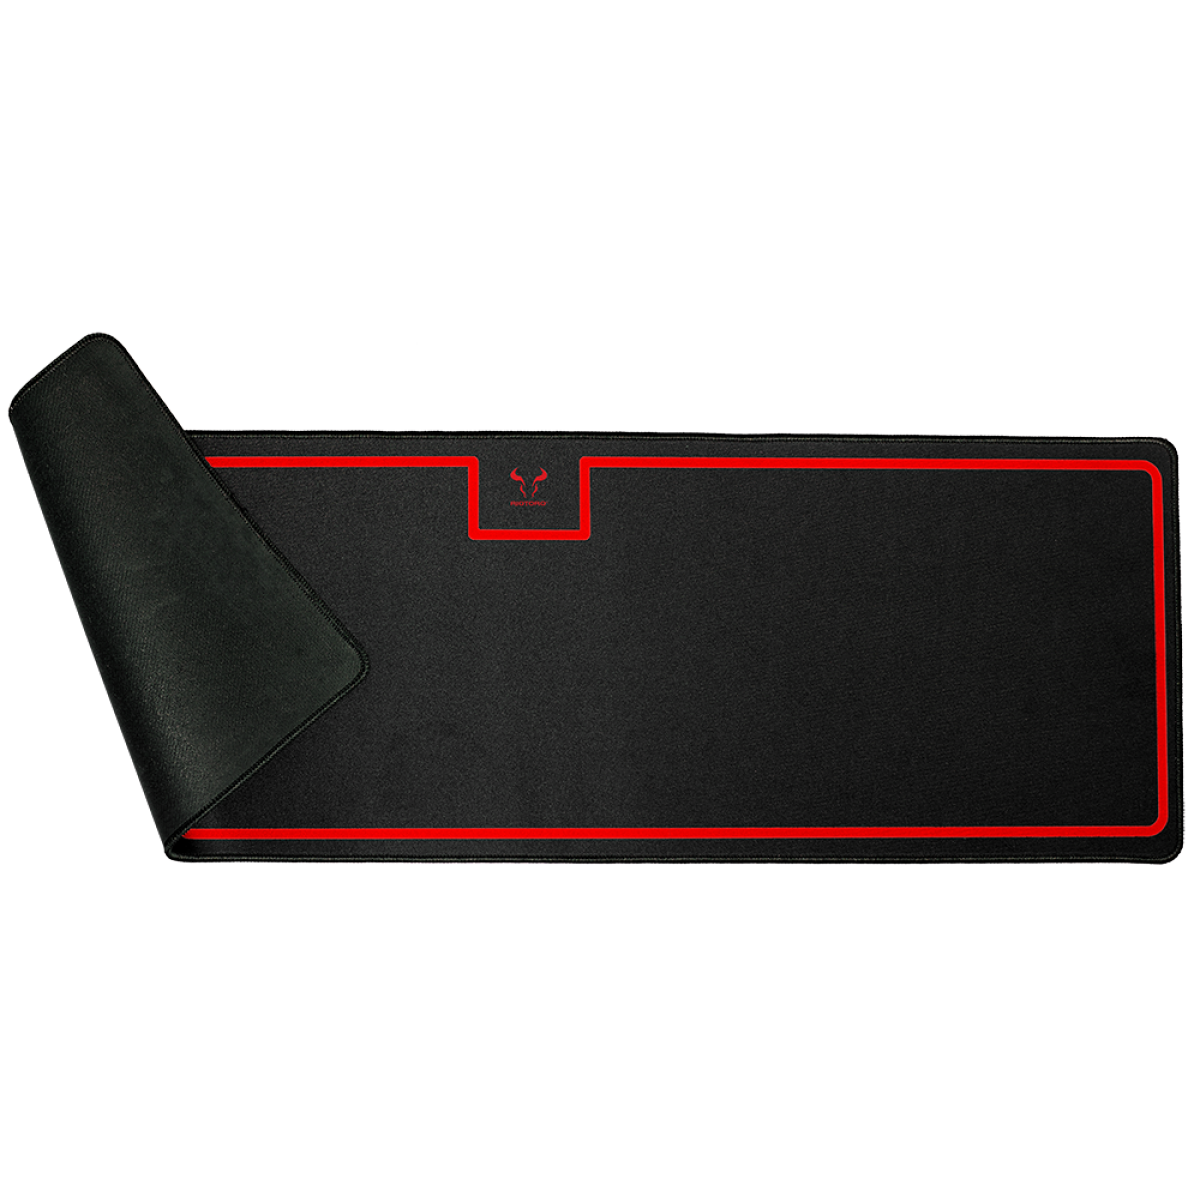 Mousepad Gamer Riotoro Classic Bull, Size Extended XL